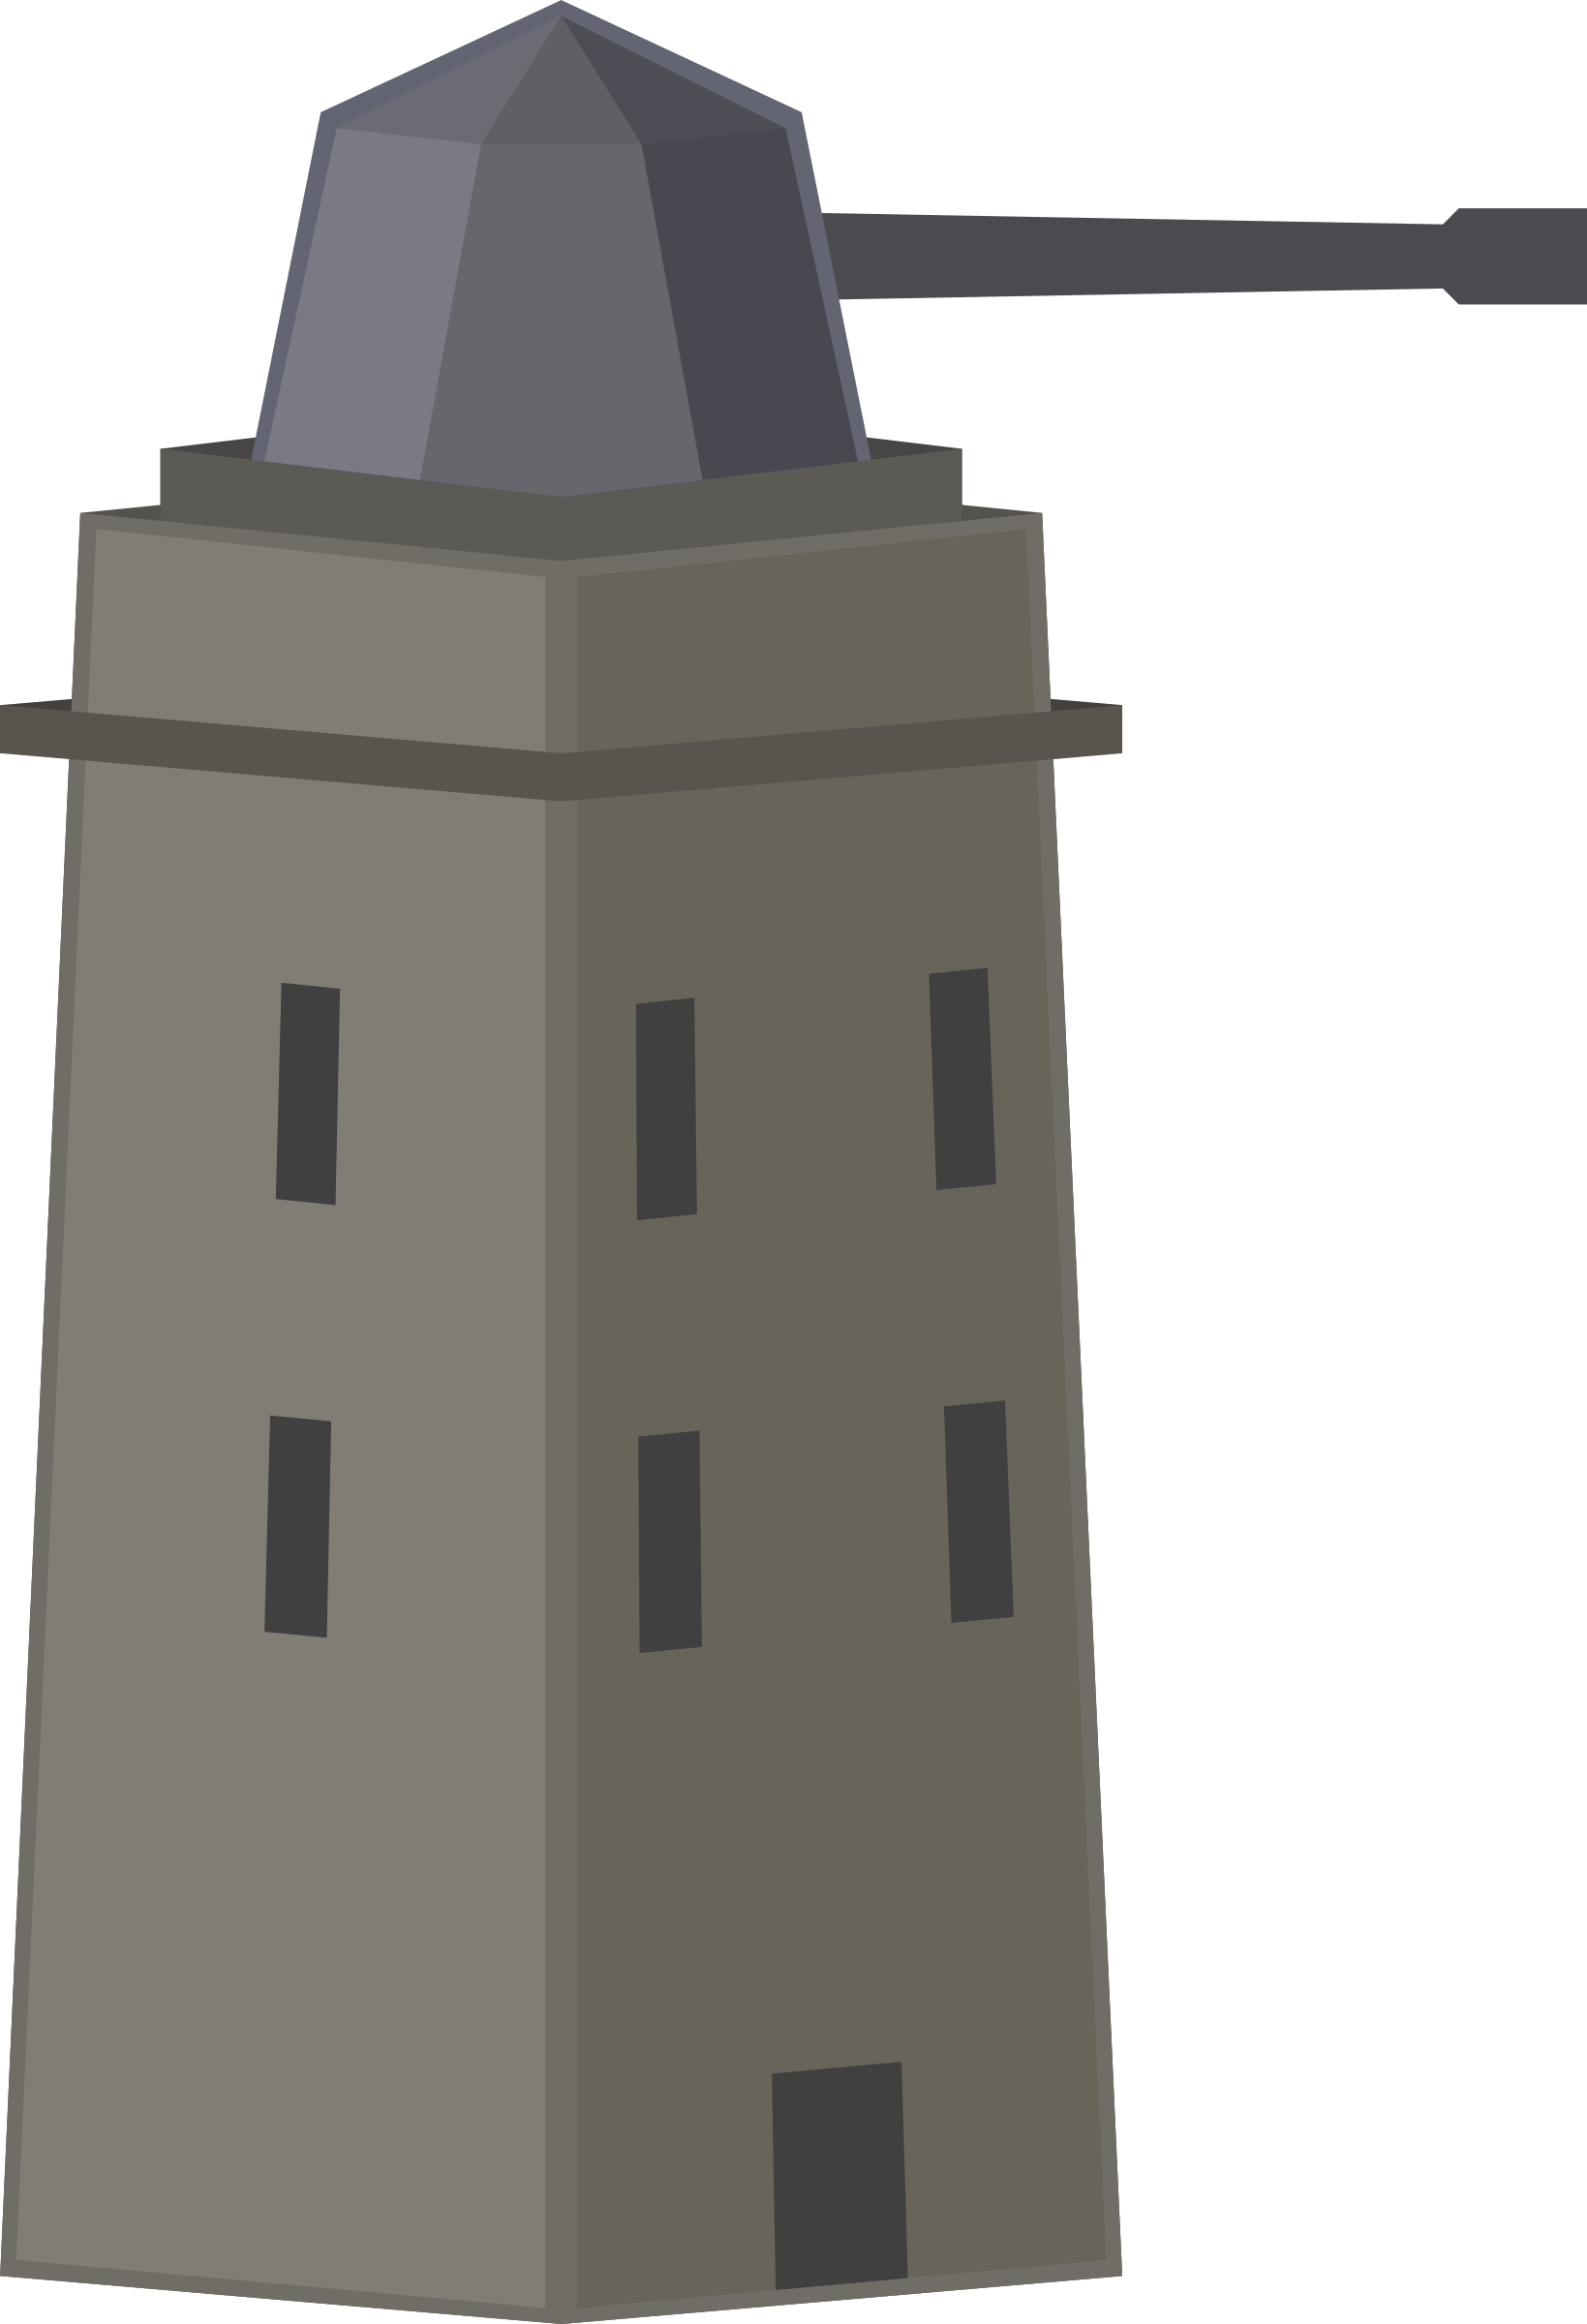 Military clipart turret. Anti air tower or